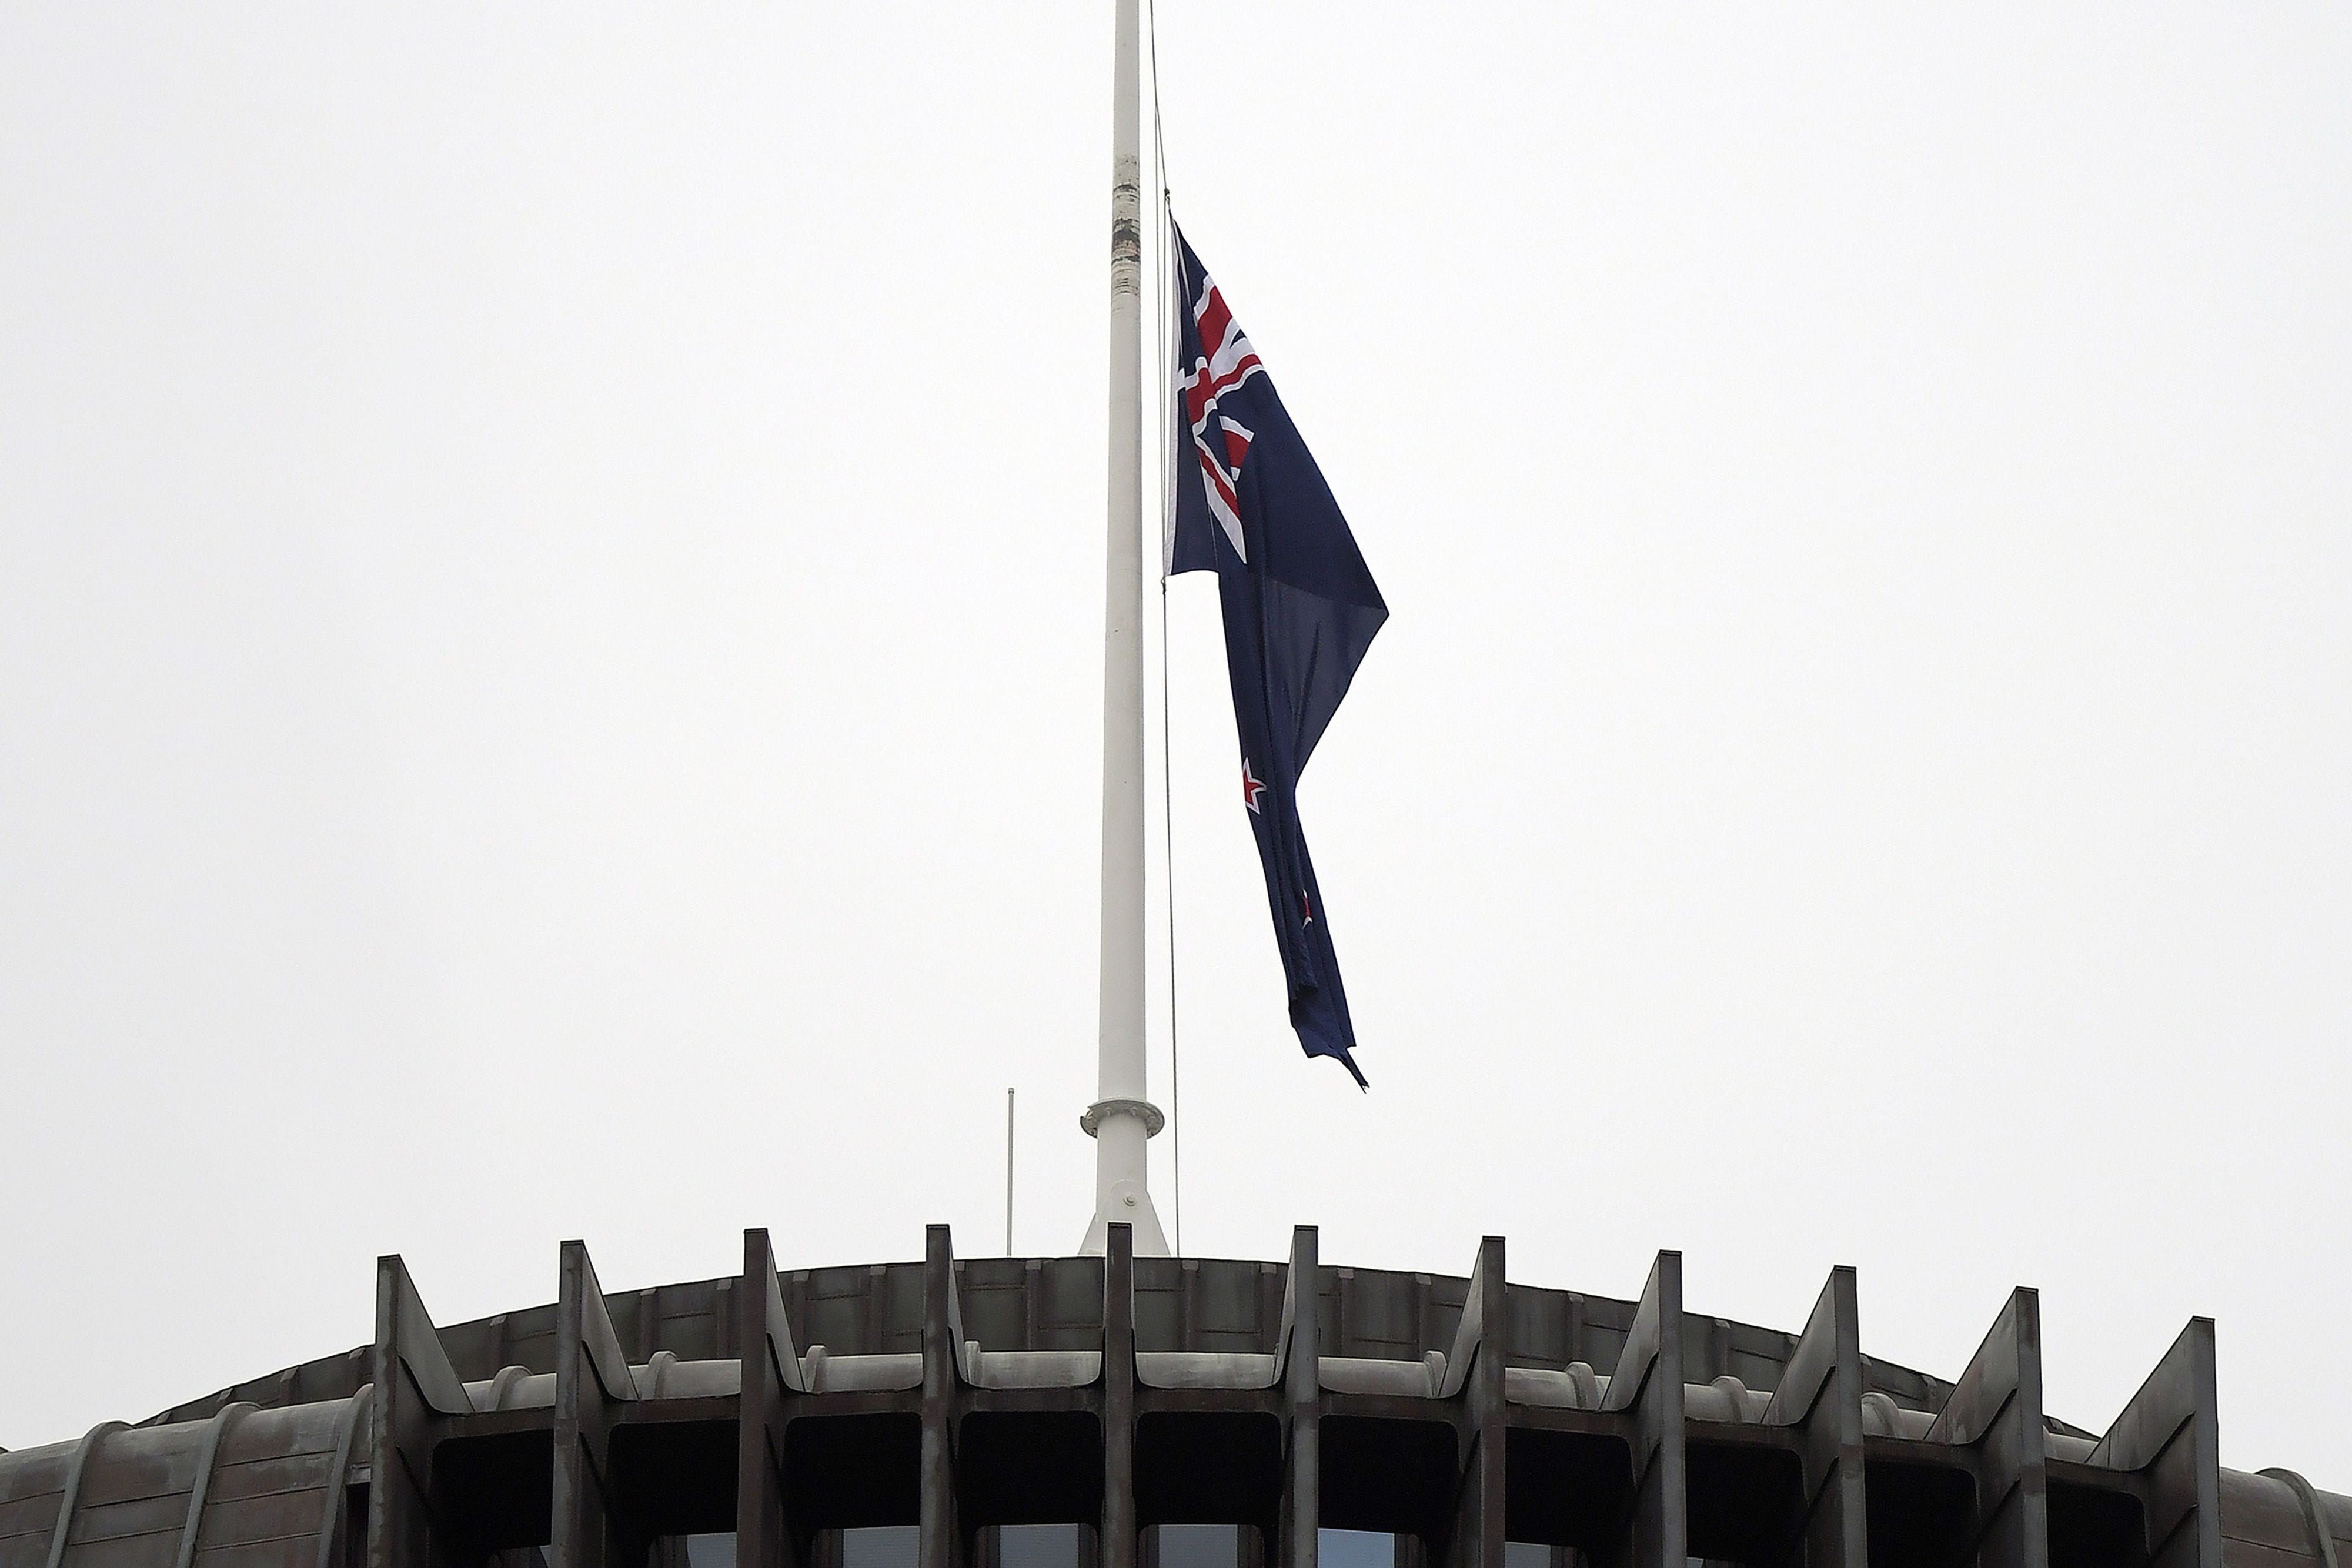 New Zealand debates free speech after ban of accused mosque shooter's manifesto